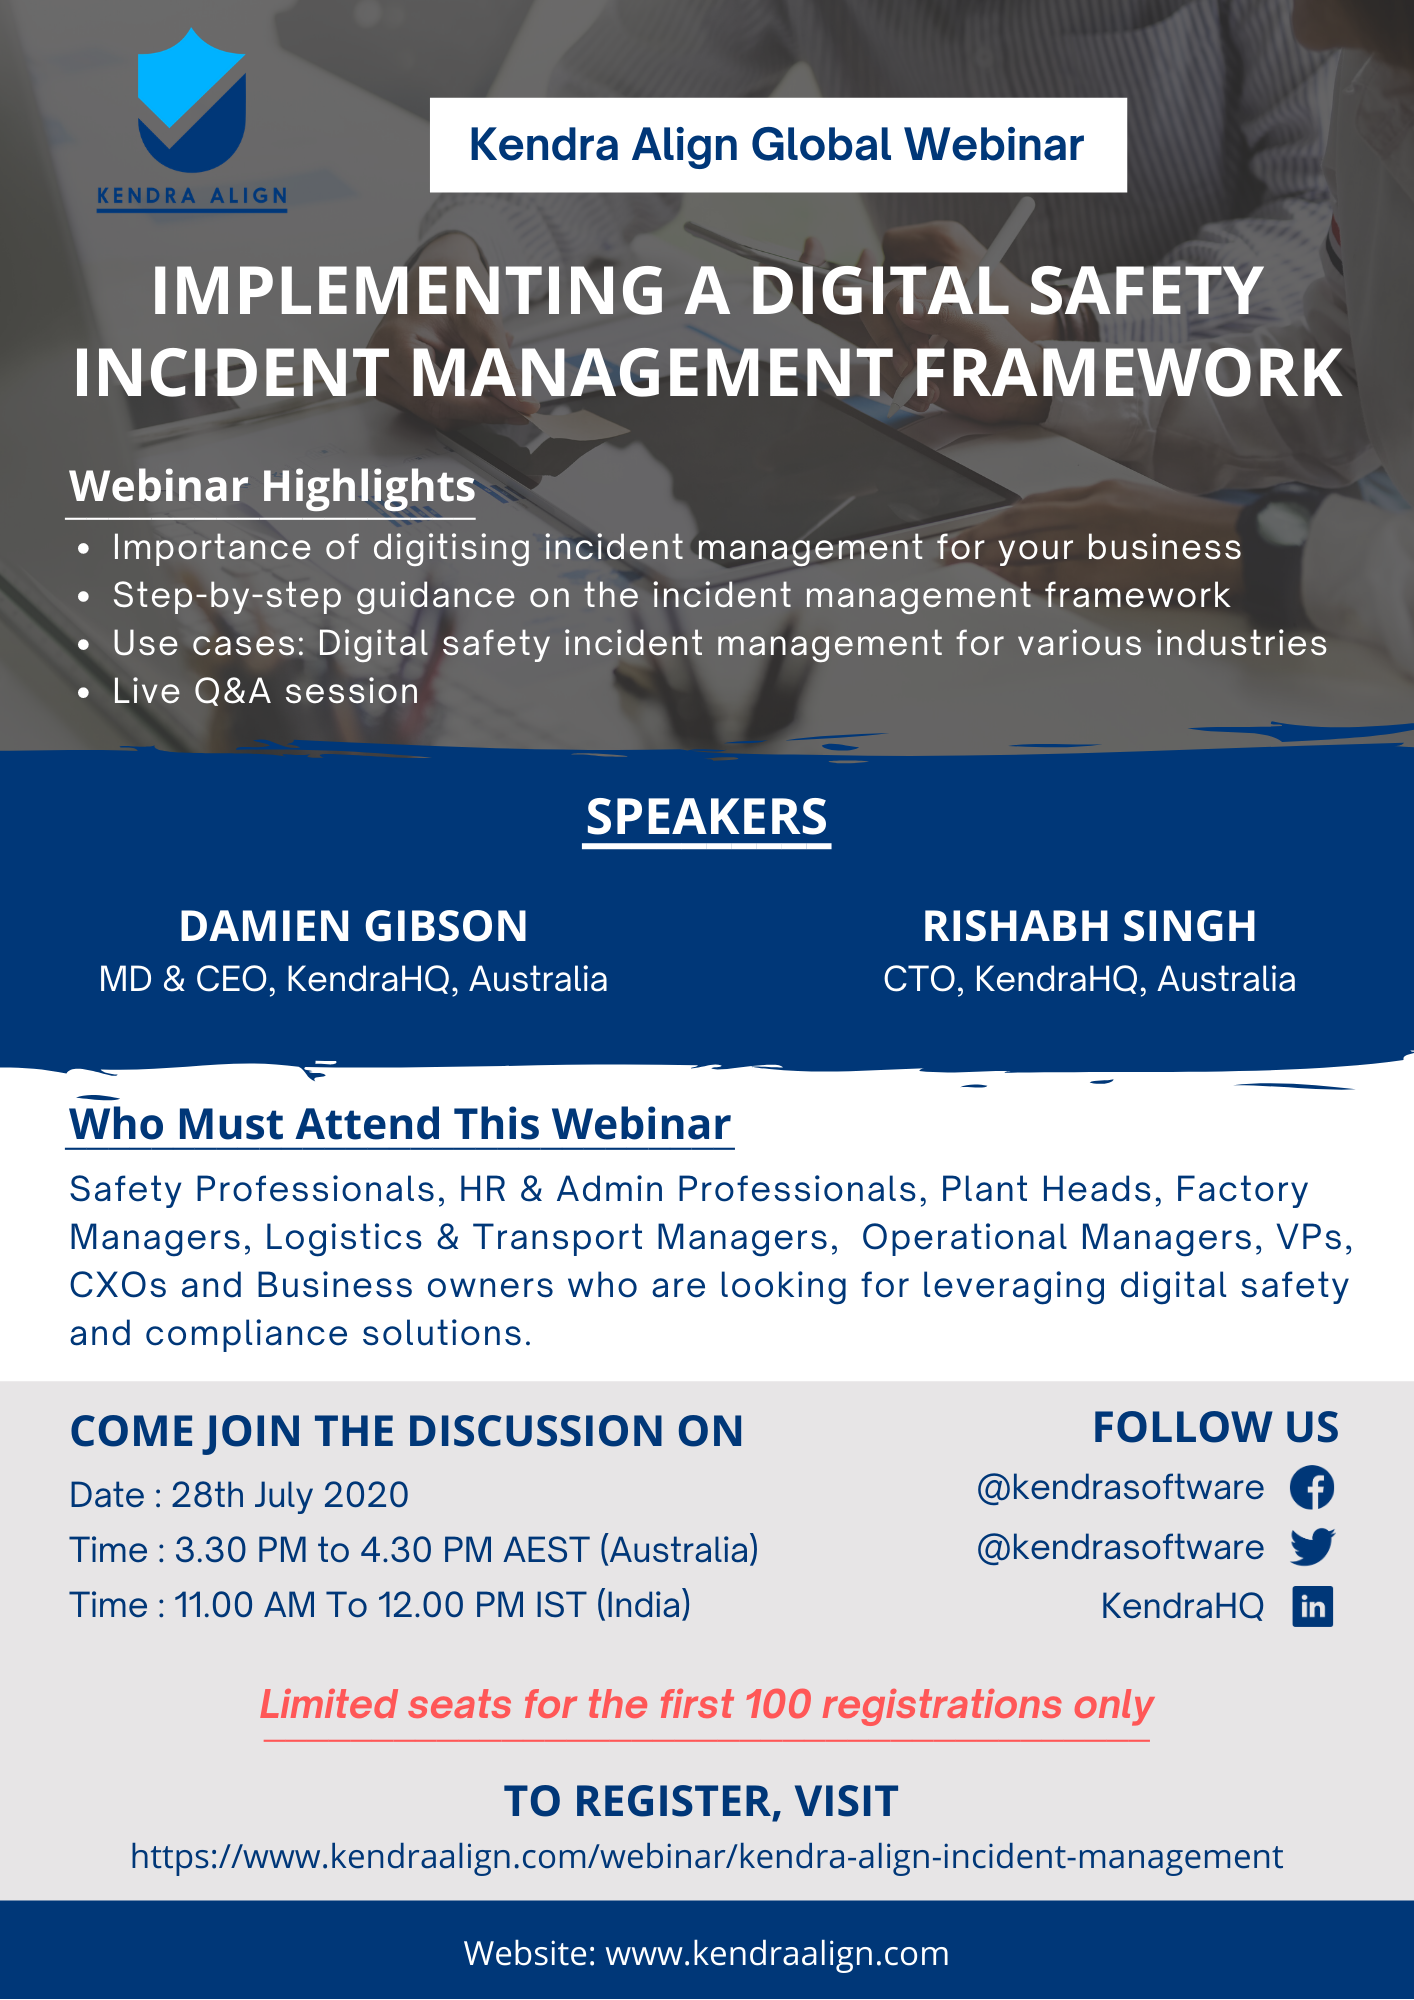 Implement A Digital Safety Incident Management Framework